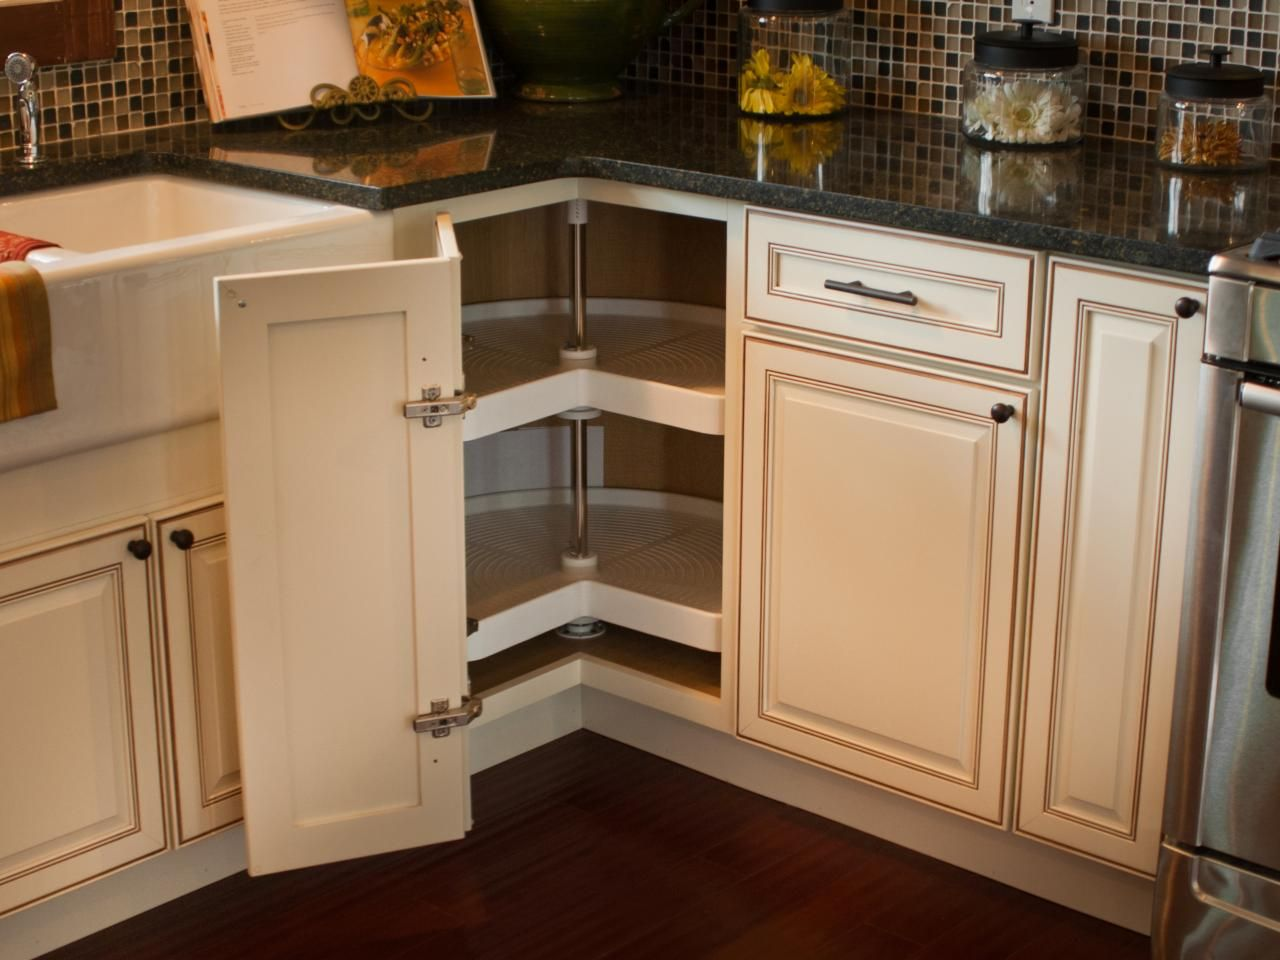 Kitchen Cabinets Lazy Susan Corner Cabinet A Corner Cabinet Door Opens To Reveal A Kidney Shaped Lazy